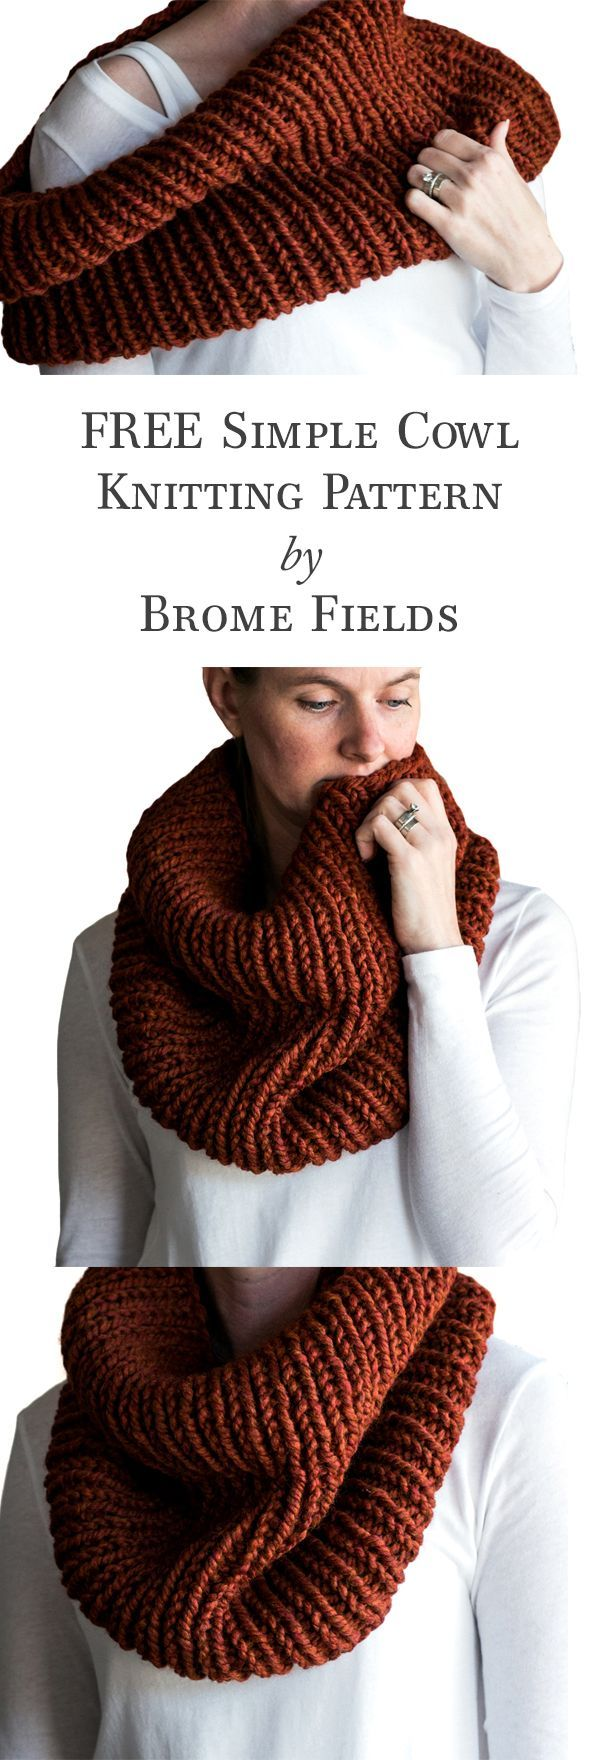 2654 best crochet knitting embroidery images on pinterest free thick quick cowl knitting pattern bankloansurffo Images